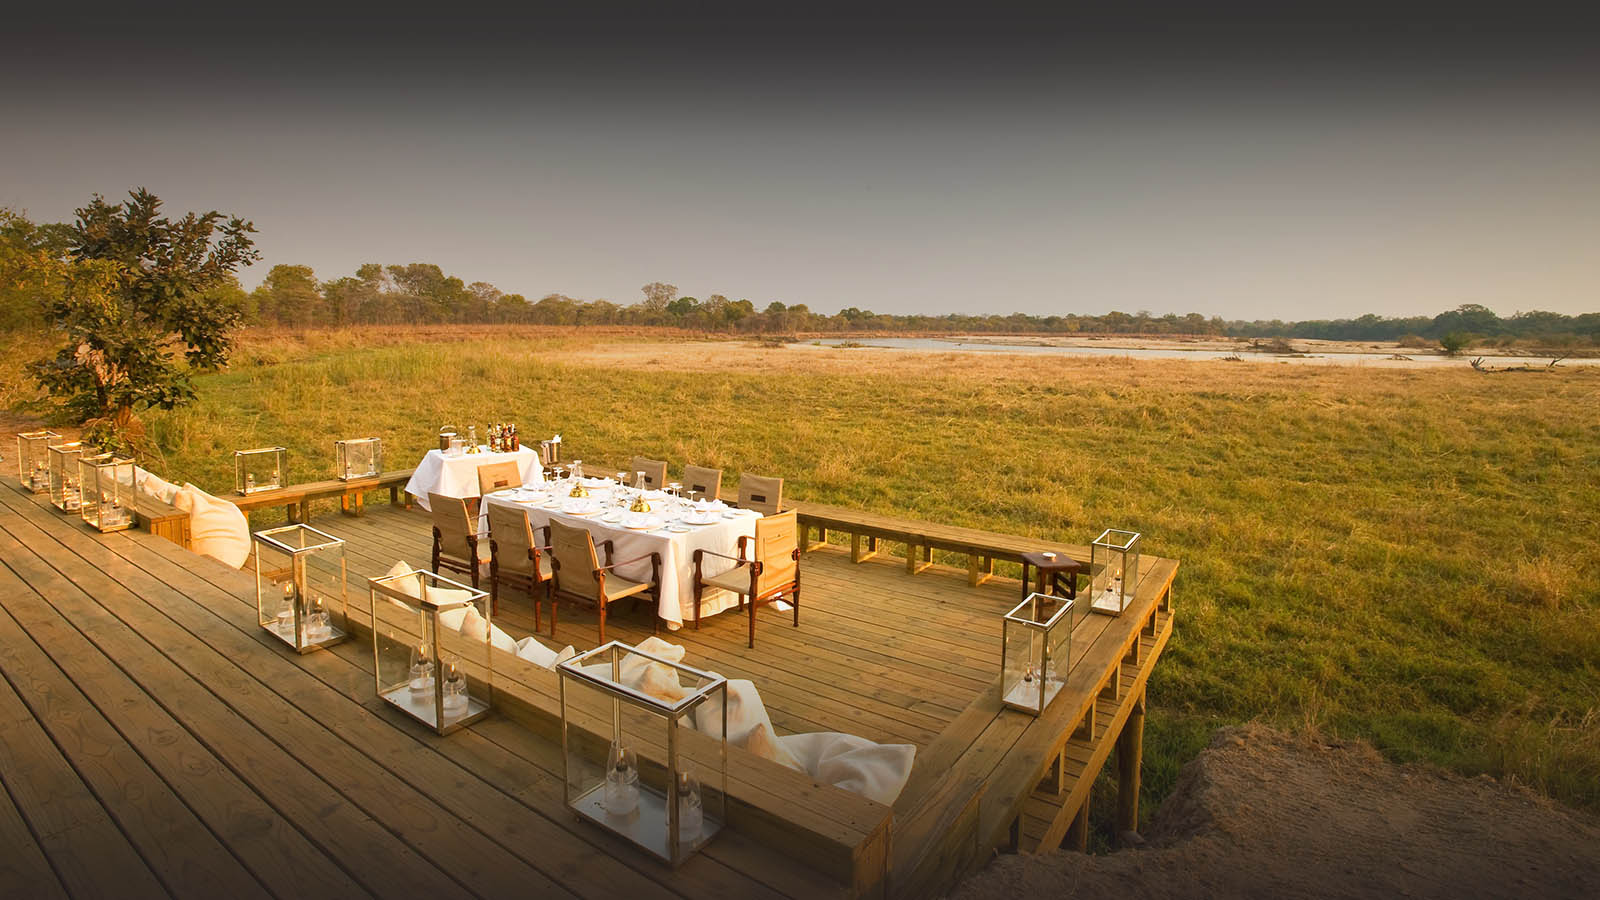 zungulila bushcamp lodge-zambia-in-style-tours-safari-packages-lodges-exploring-south-luangwa-national-park-dining